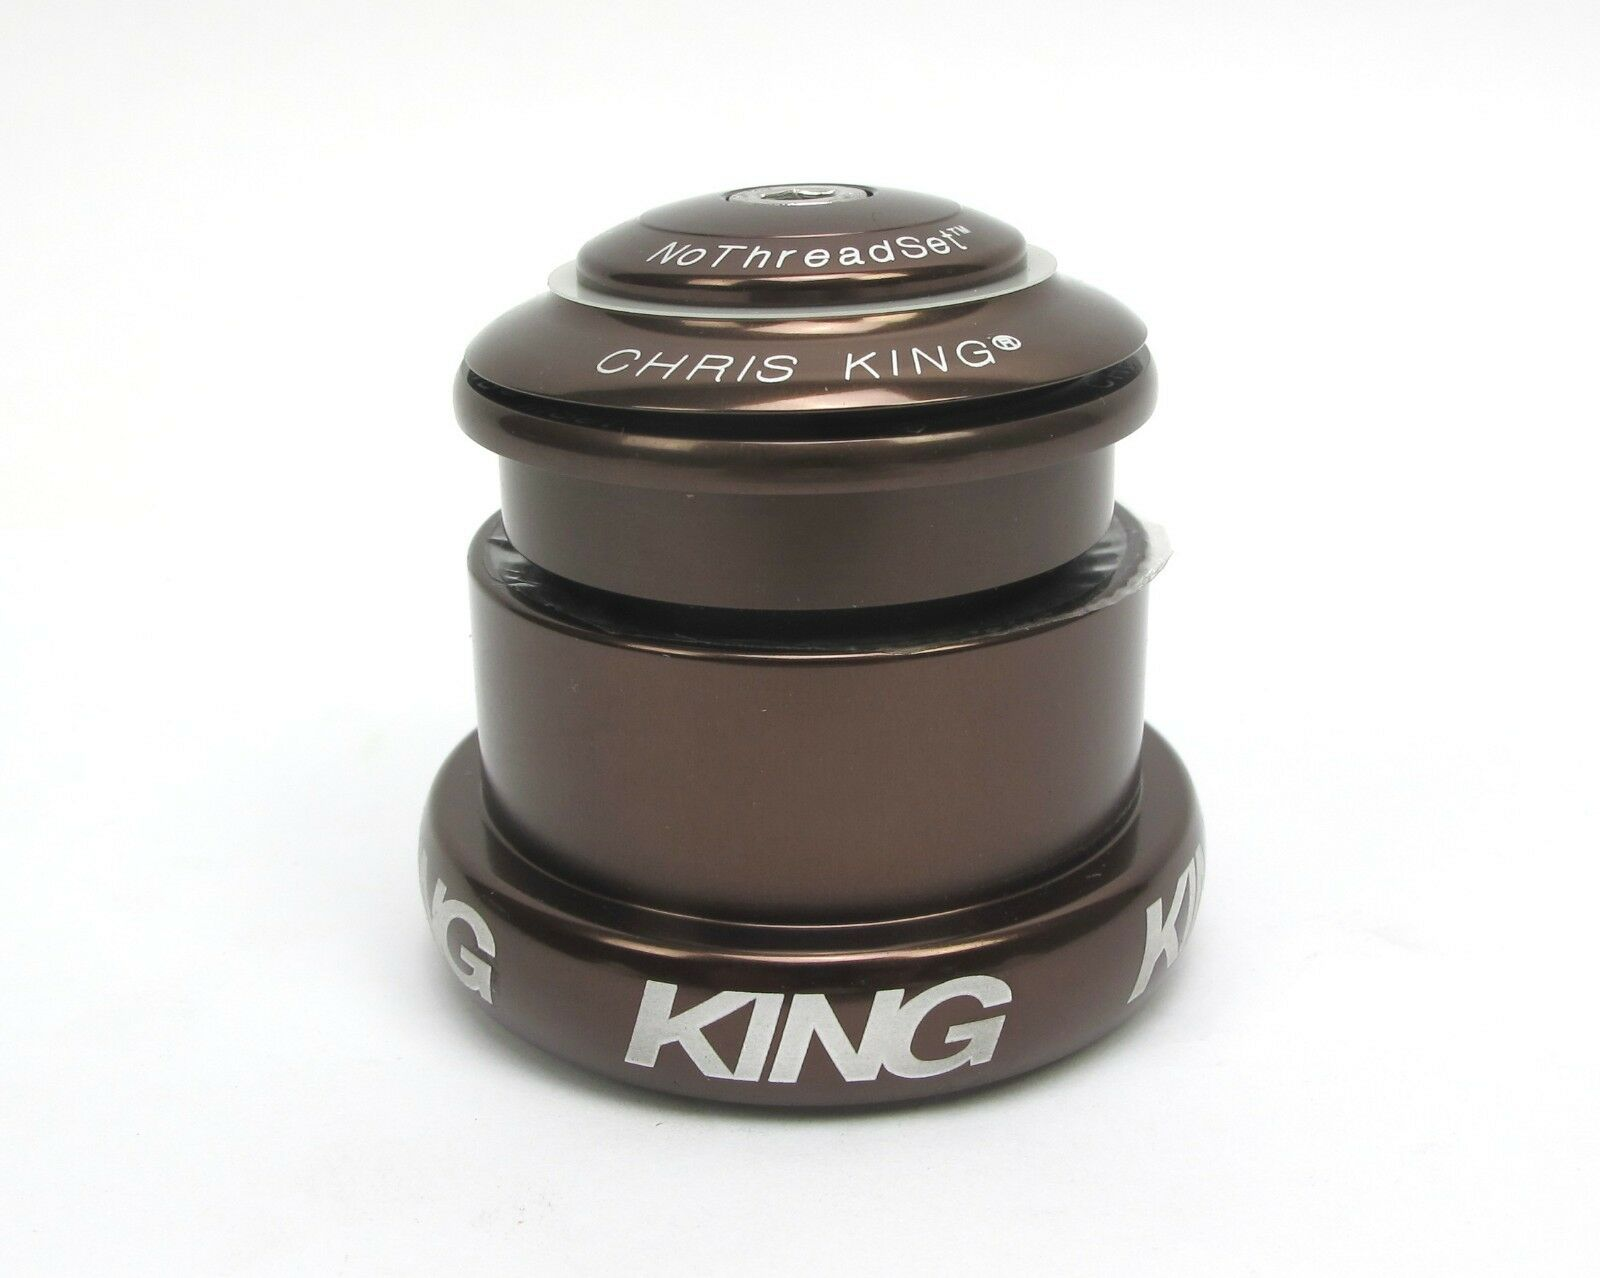 Chris King Inset 3 Headset ZS44   EC49 Brown i3 - 10 Year Warranty